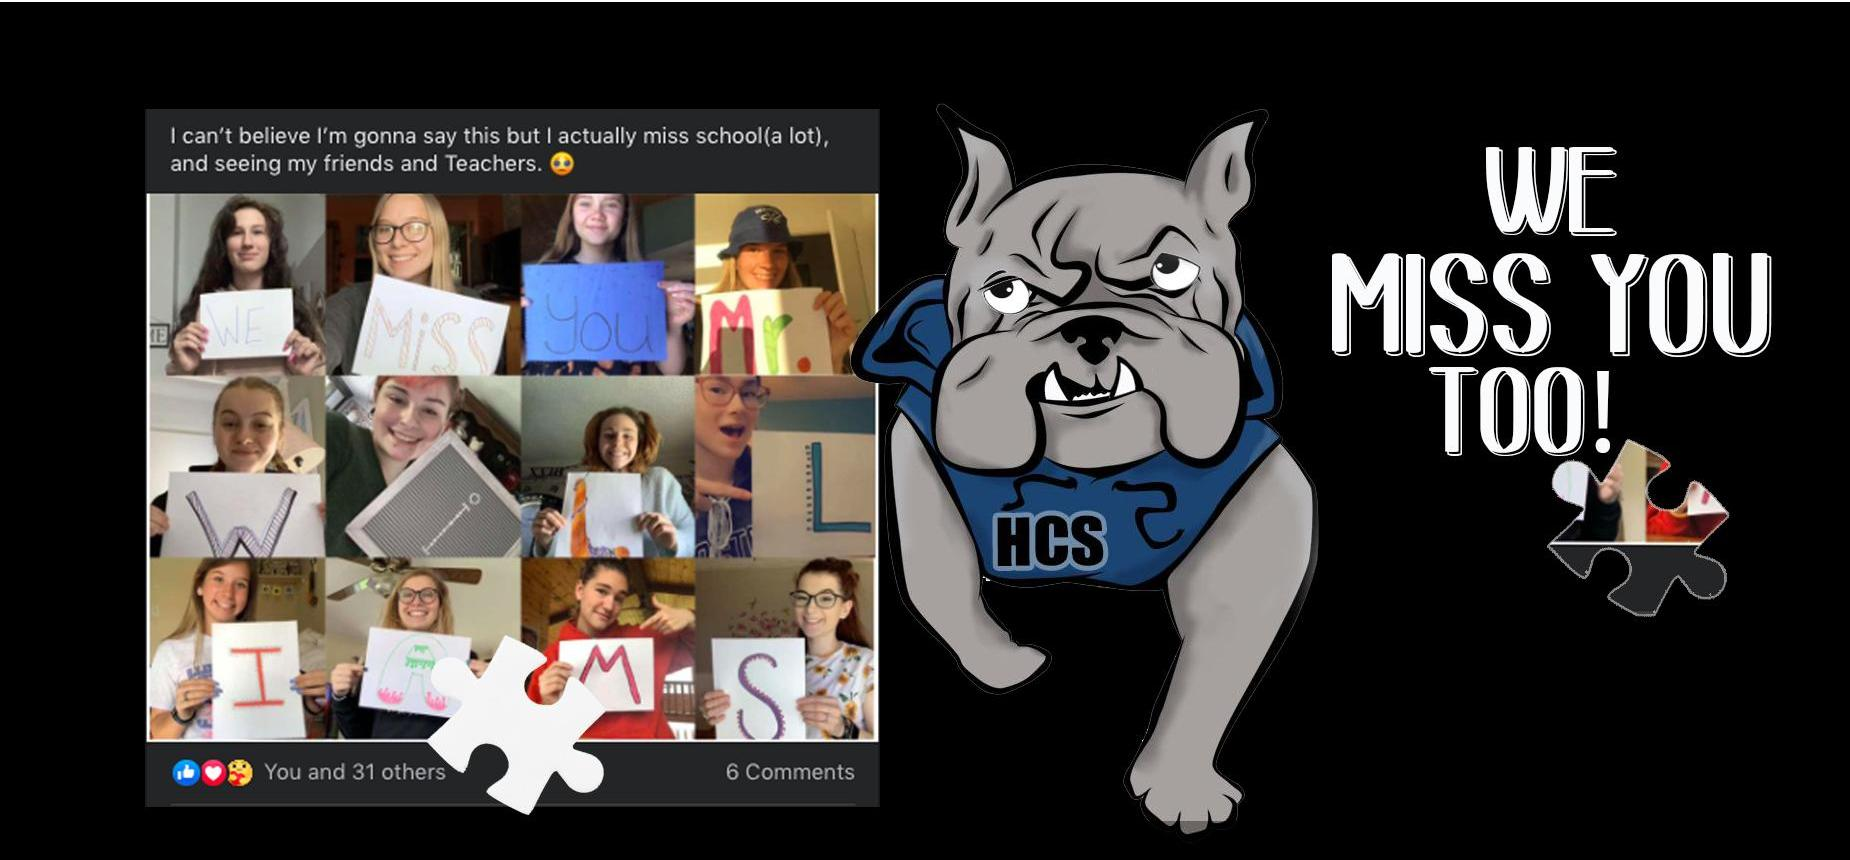 Photo of students at a virtual meeting with signs expressing that they miss school